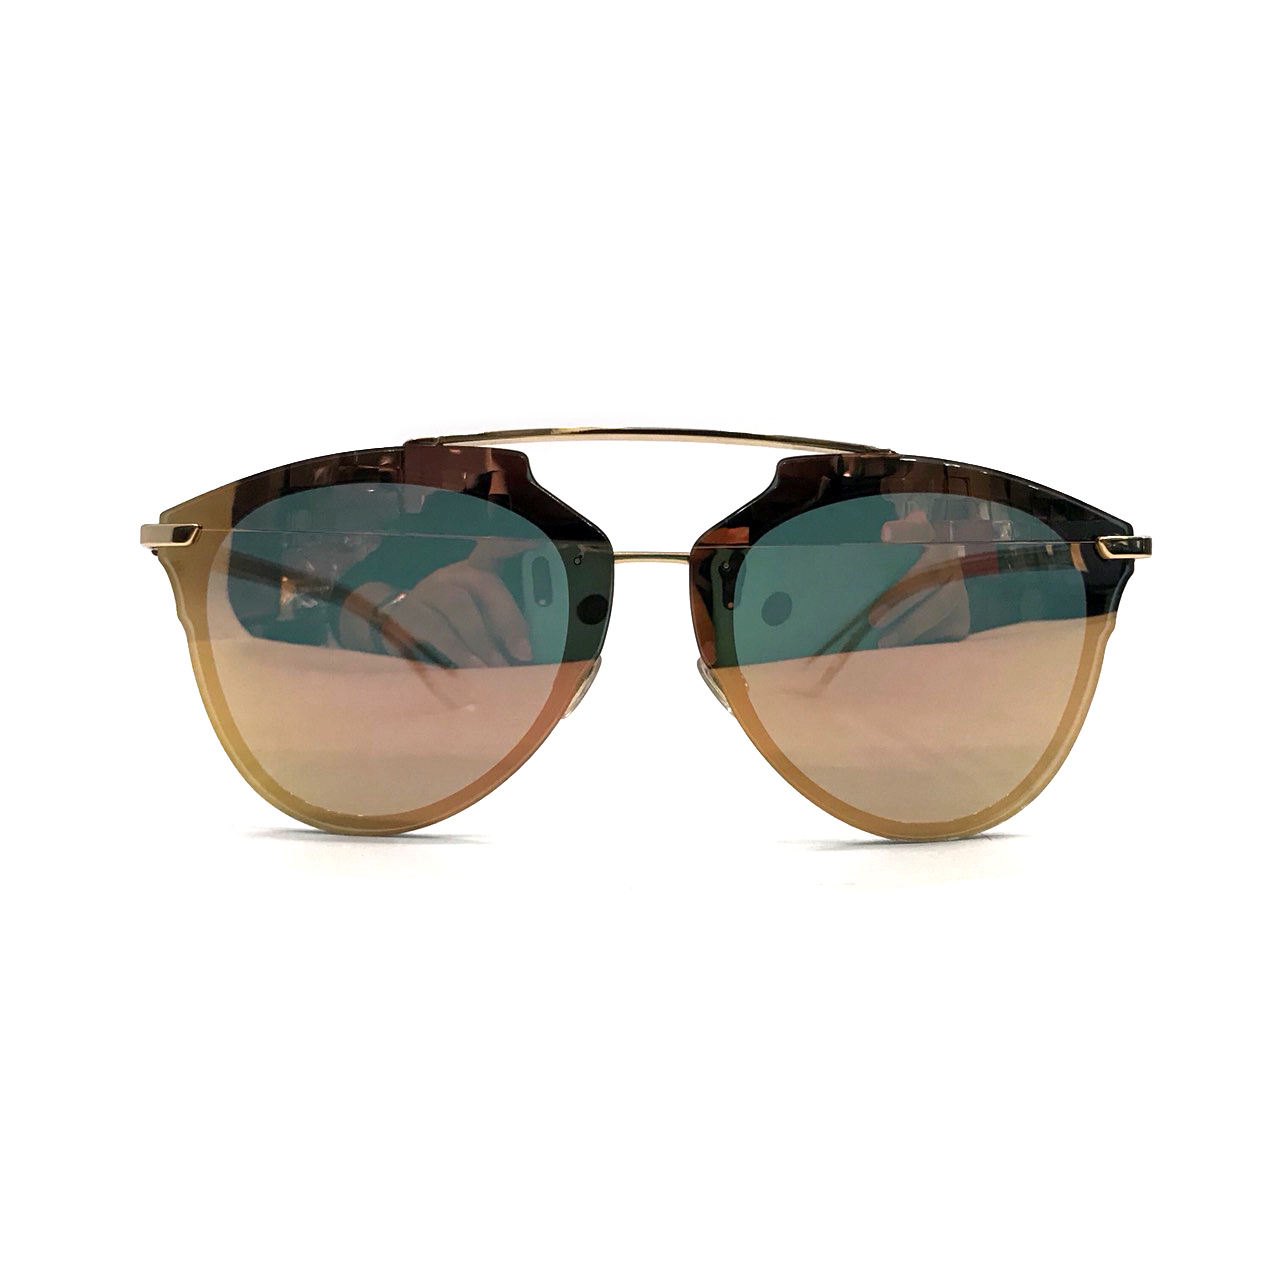 Used Christian Dior Reflected Pixel Sunglasses in Gold Reflected LGHW